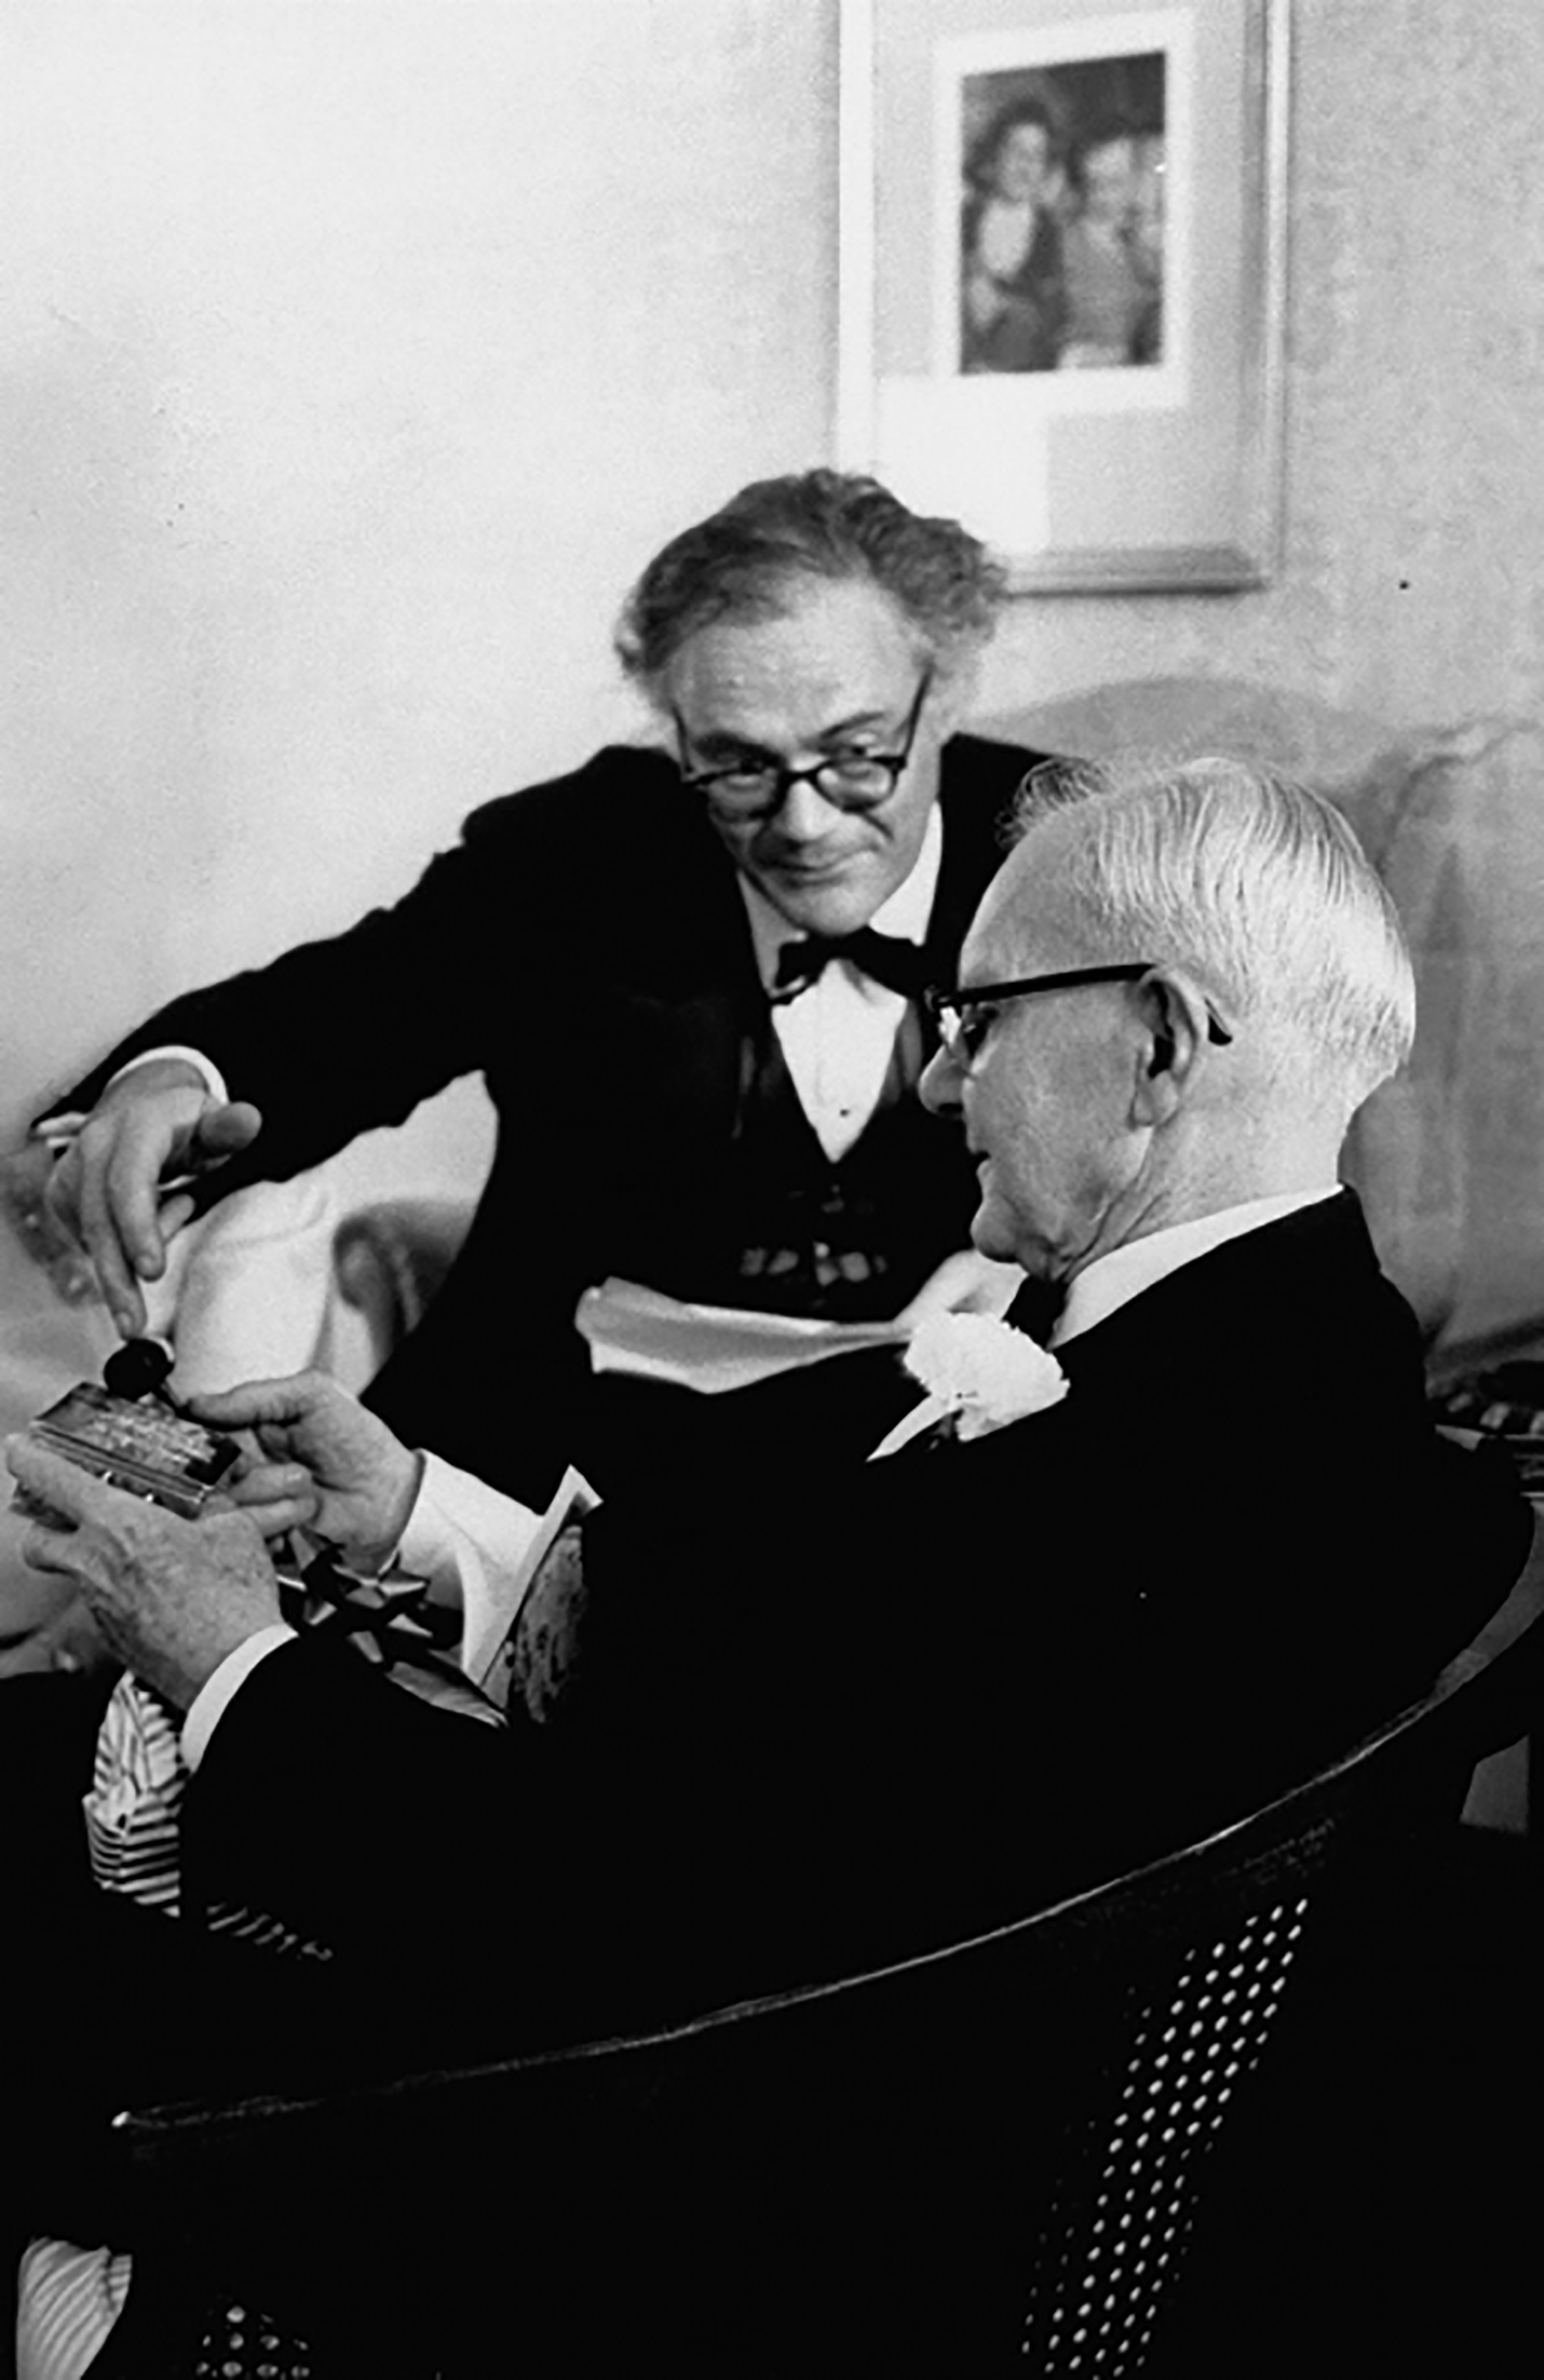 Robert Lowell giving John Crowe Ransom a gift for his eightieth birthday, 1968